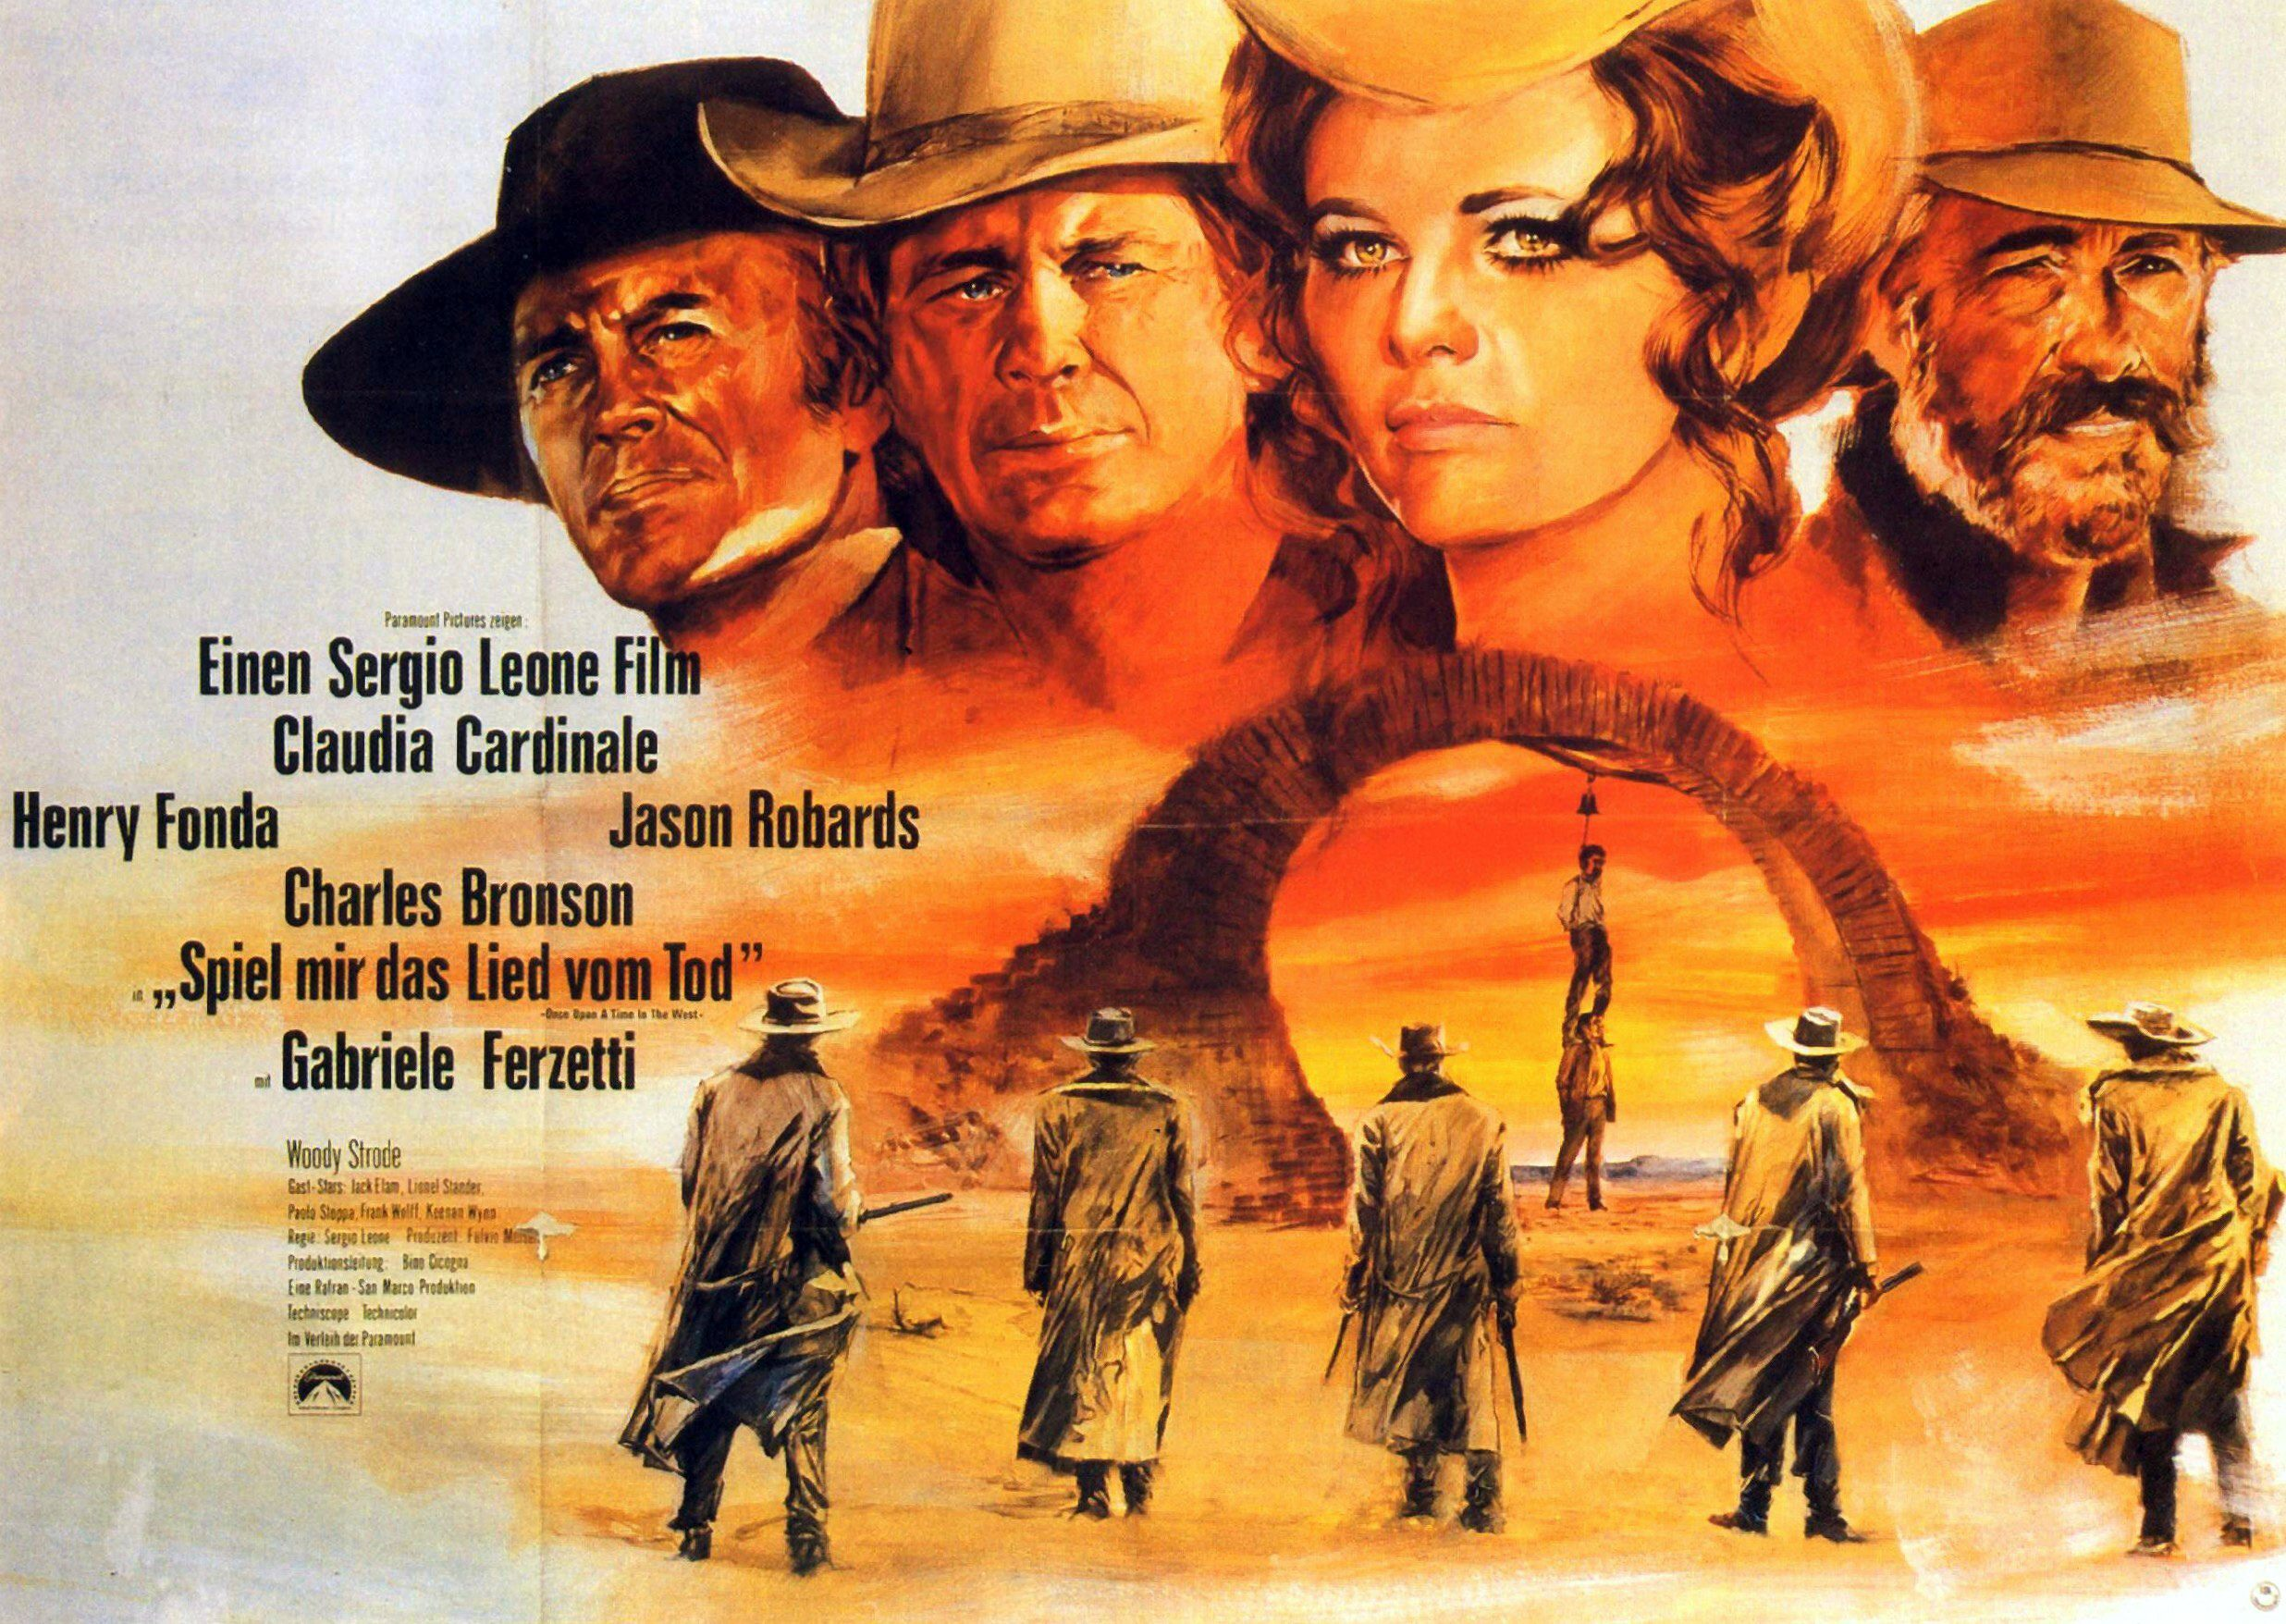 Once upon a time in the west poster image